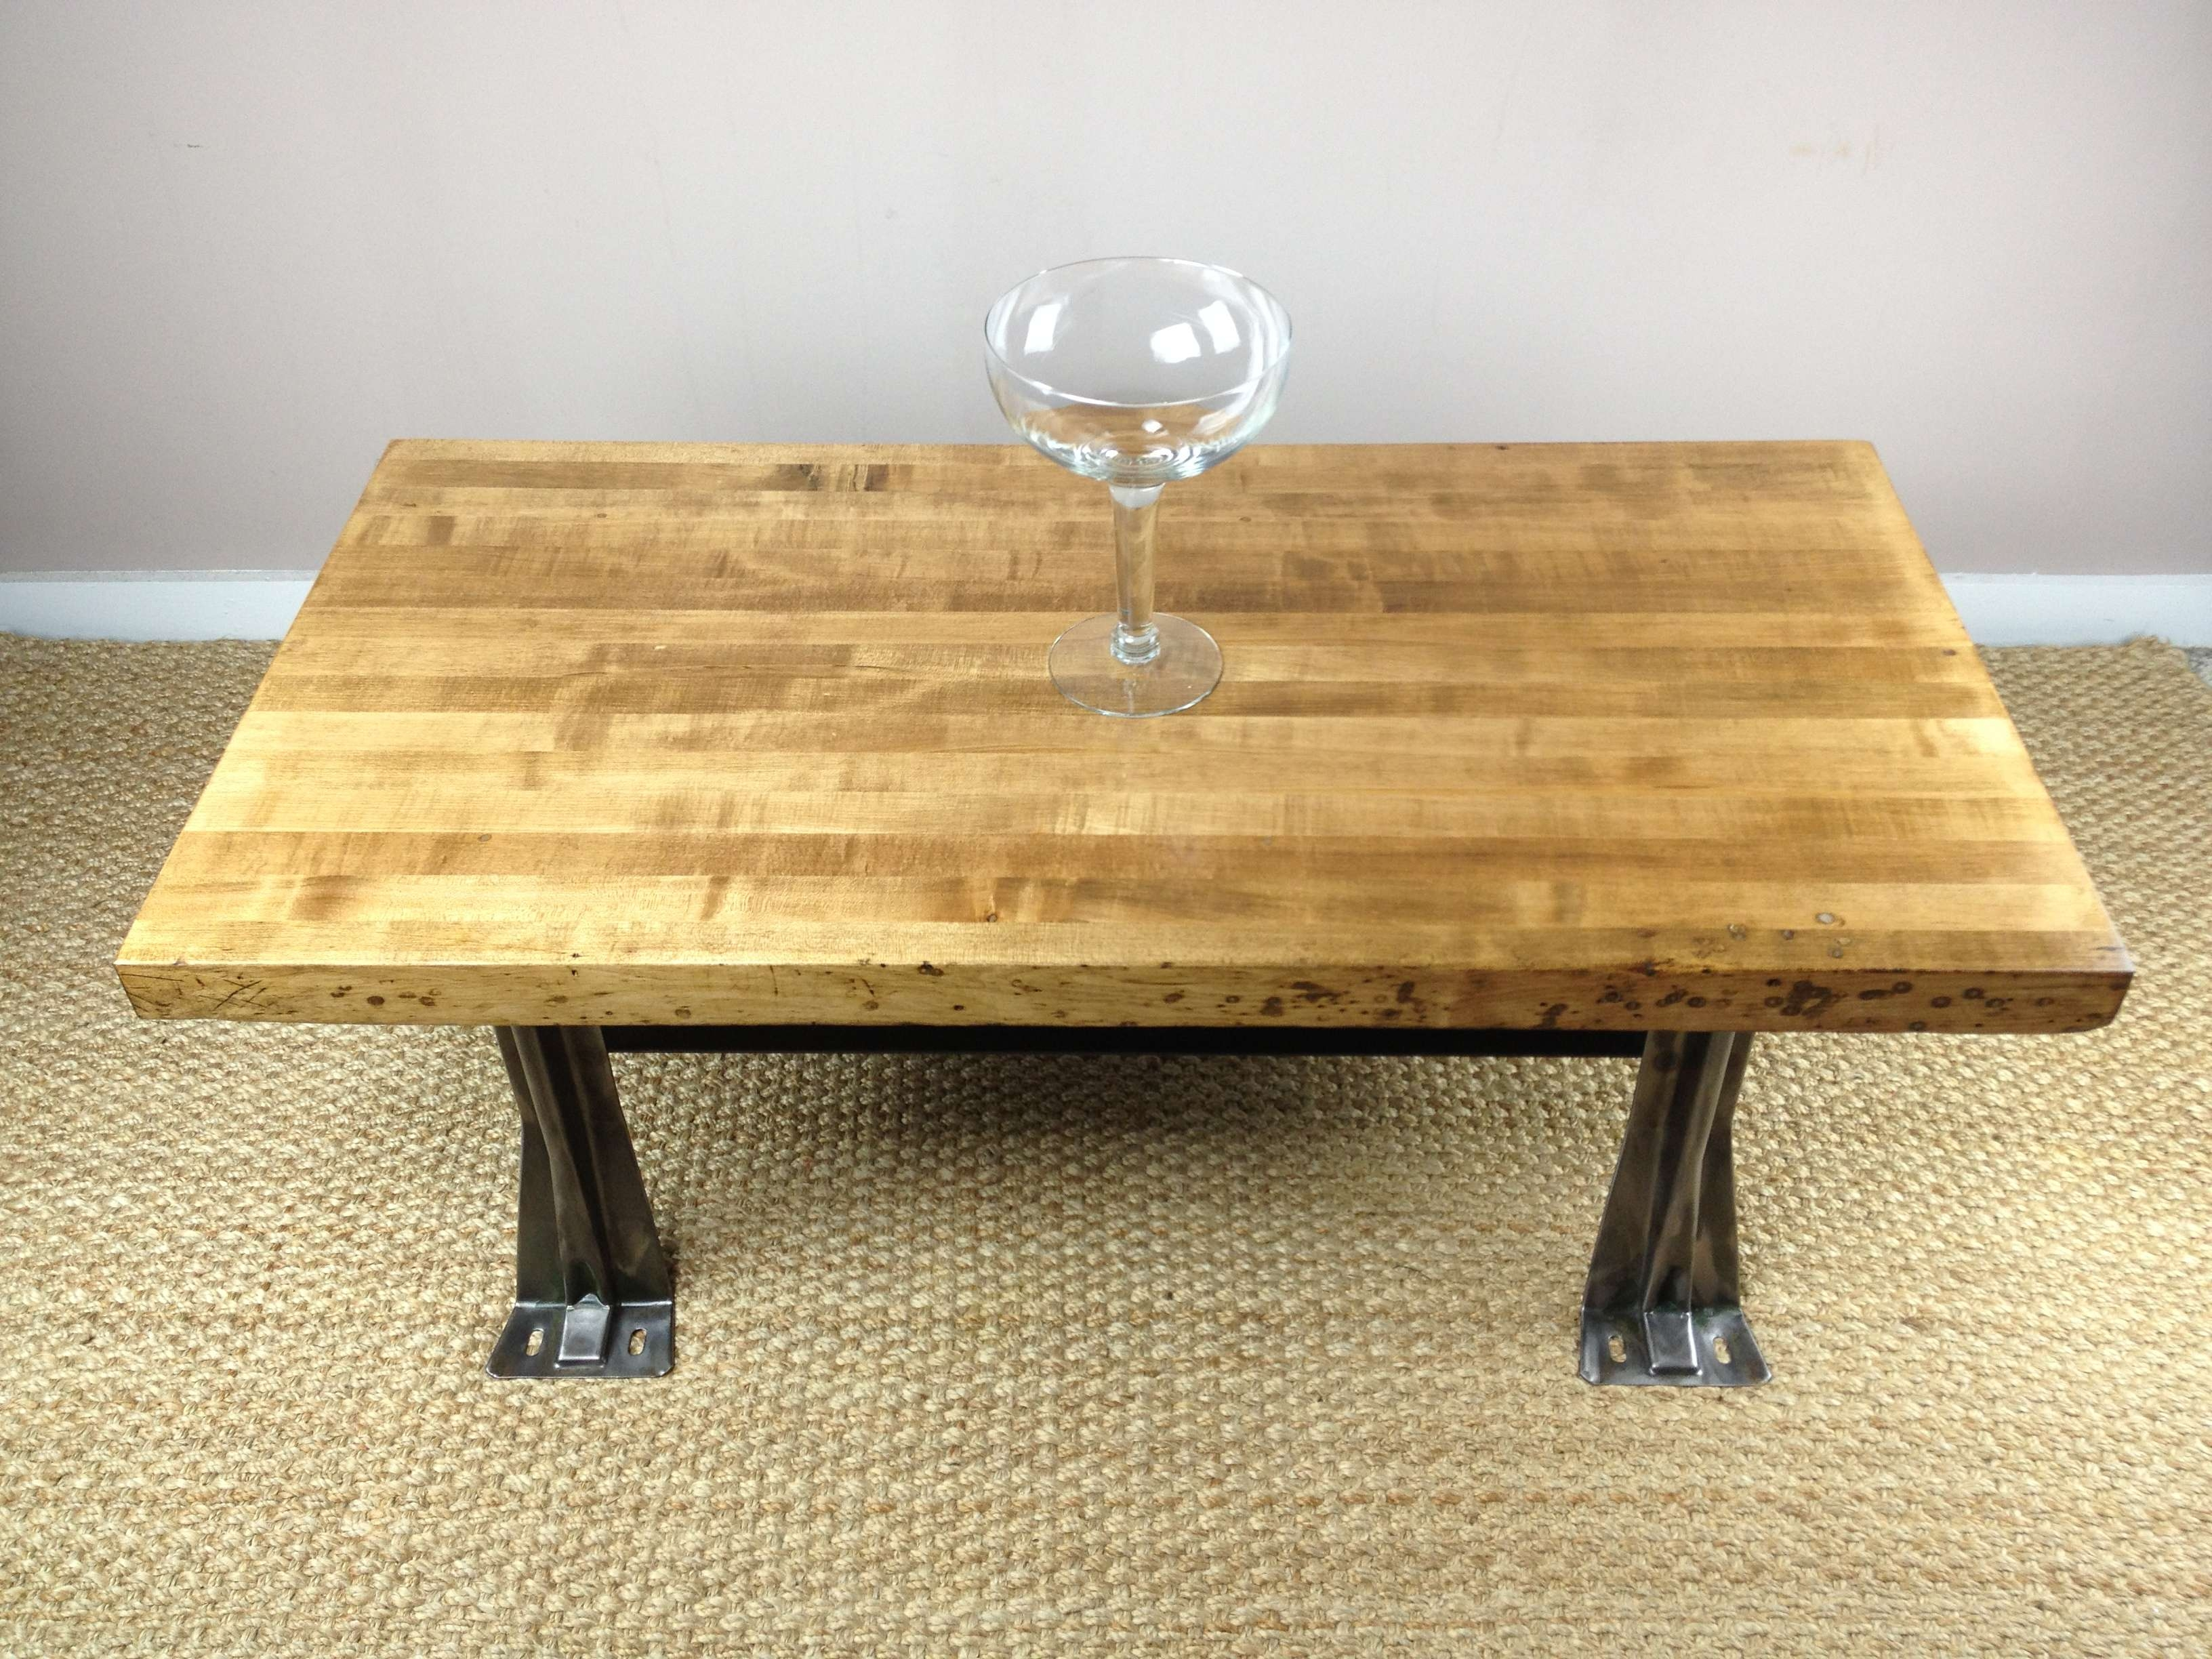 2017 Low Wooden Coffee Tables With Regard To Diy Custom Square Low Coffee Table Using Reclaimed Wood Top And (View 15 of 20)